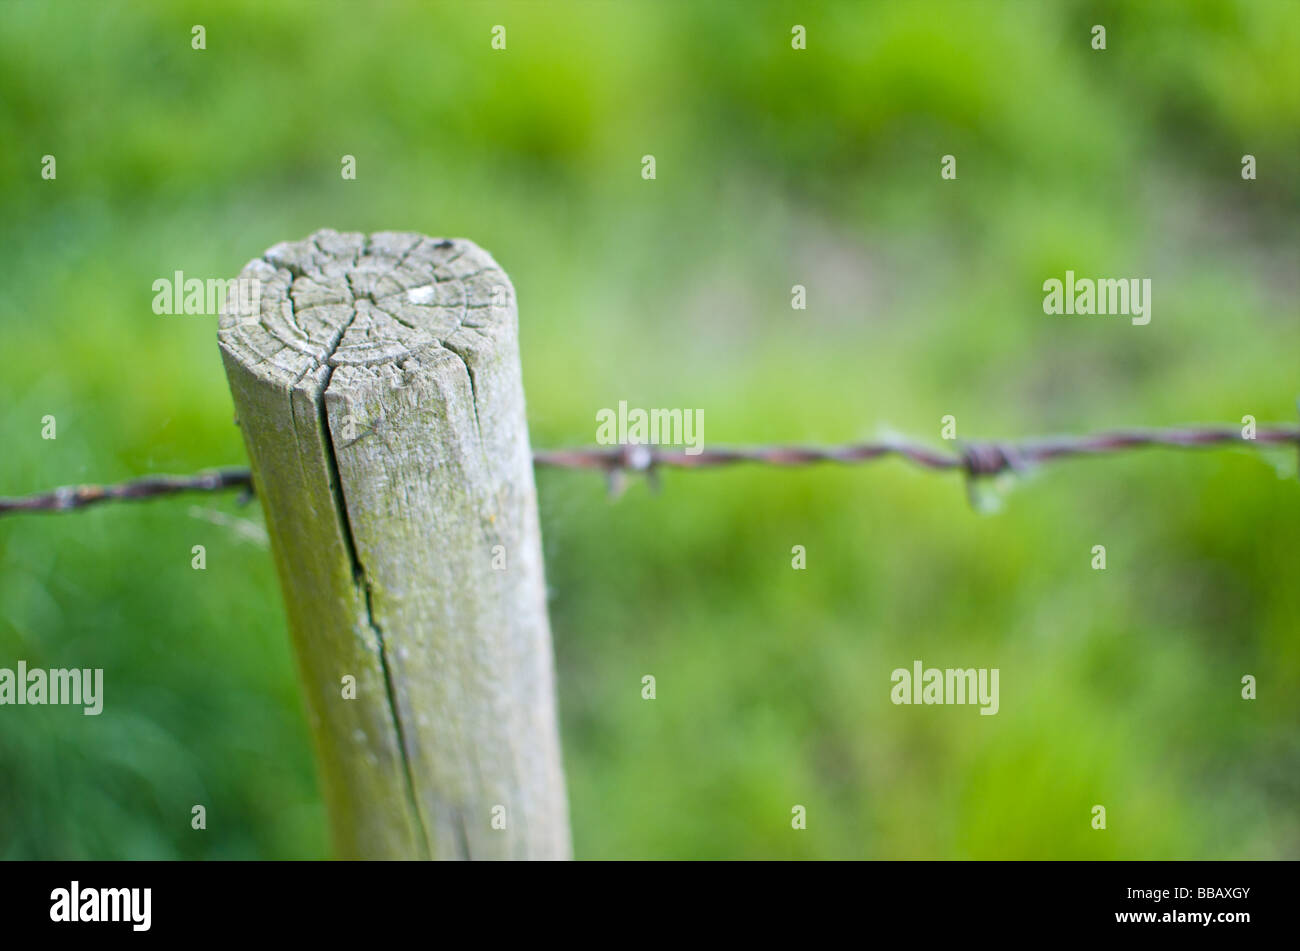 A fence post with barbed wire at the edge of a field. Close up shot with shallow depth of field. - Stock Image